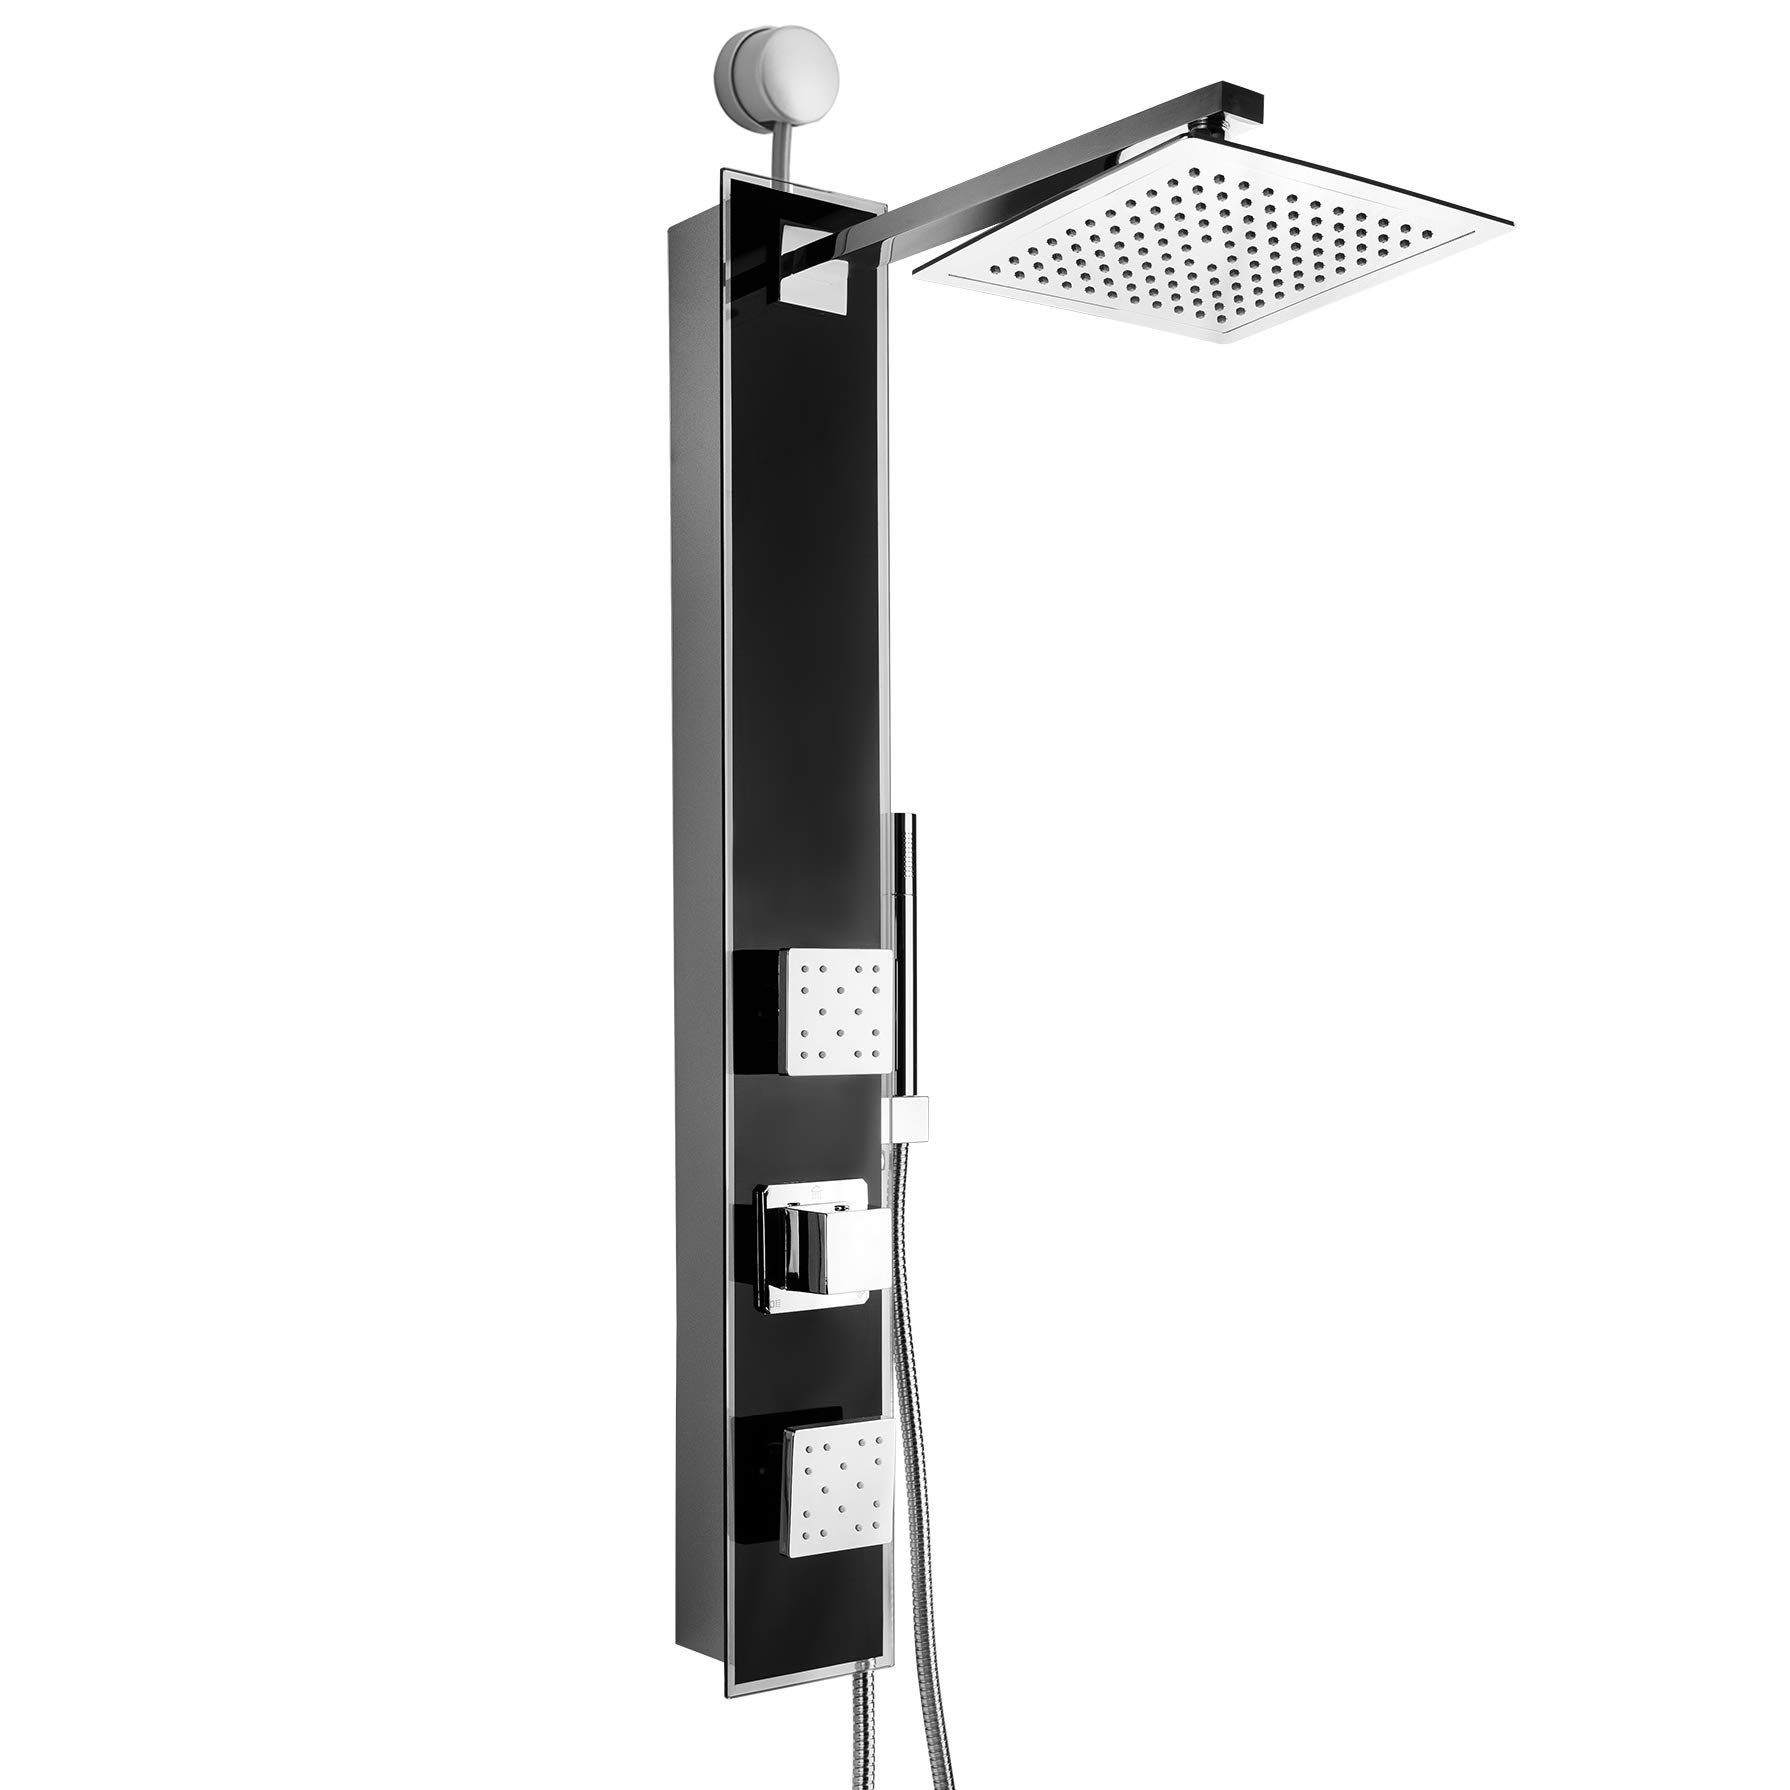 AKDY 35'' Black Tempered Glass Wall Mount Easy Connection Bathroom Multi-Function Shower Tower Panel w/Rainfall Head Dual Massage Sprays